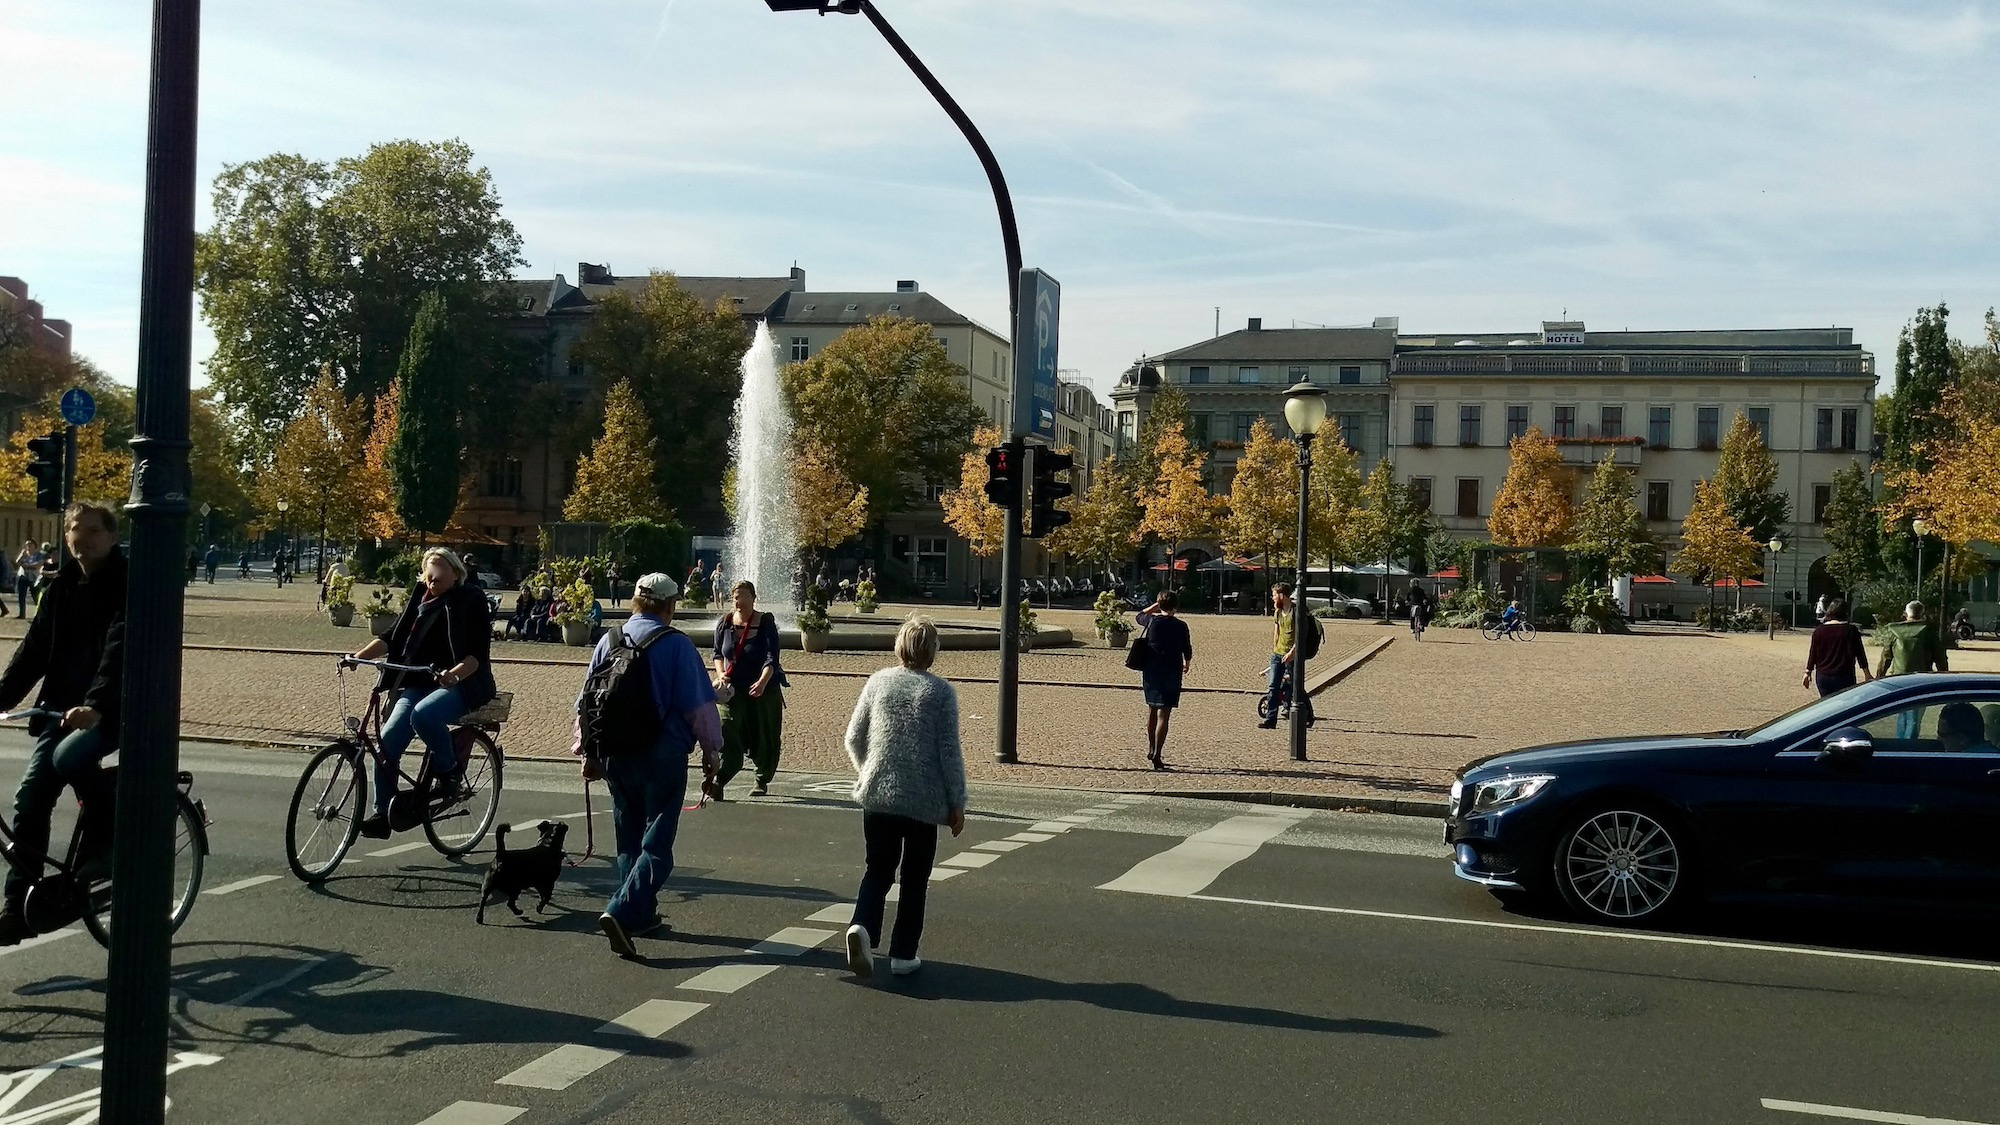 Luisenplatz looks great in a beautiful autumn day.